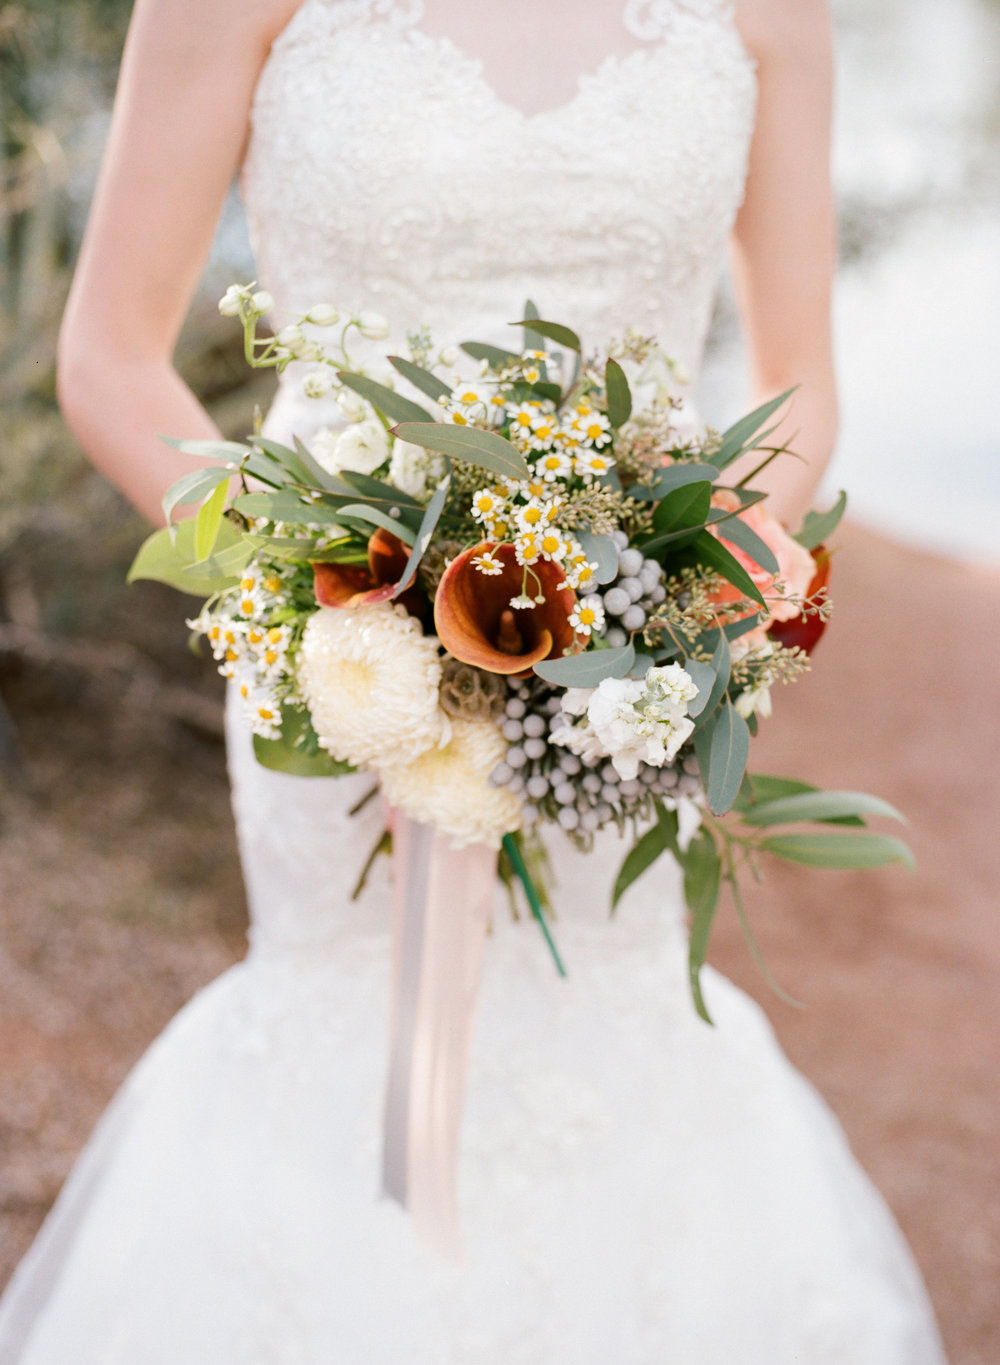 Chelsea's bouquet featured a mix of eucalyptus and bay leaves